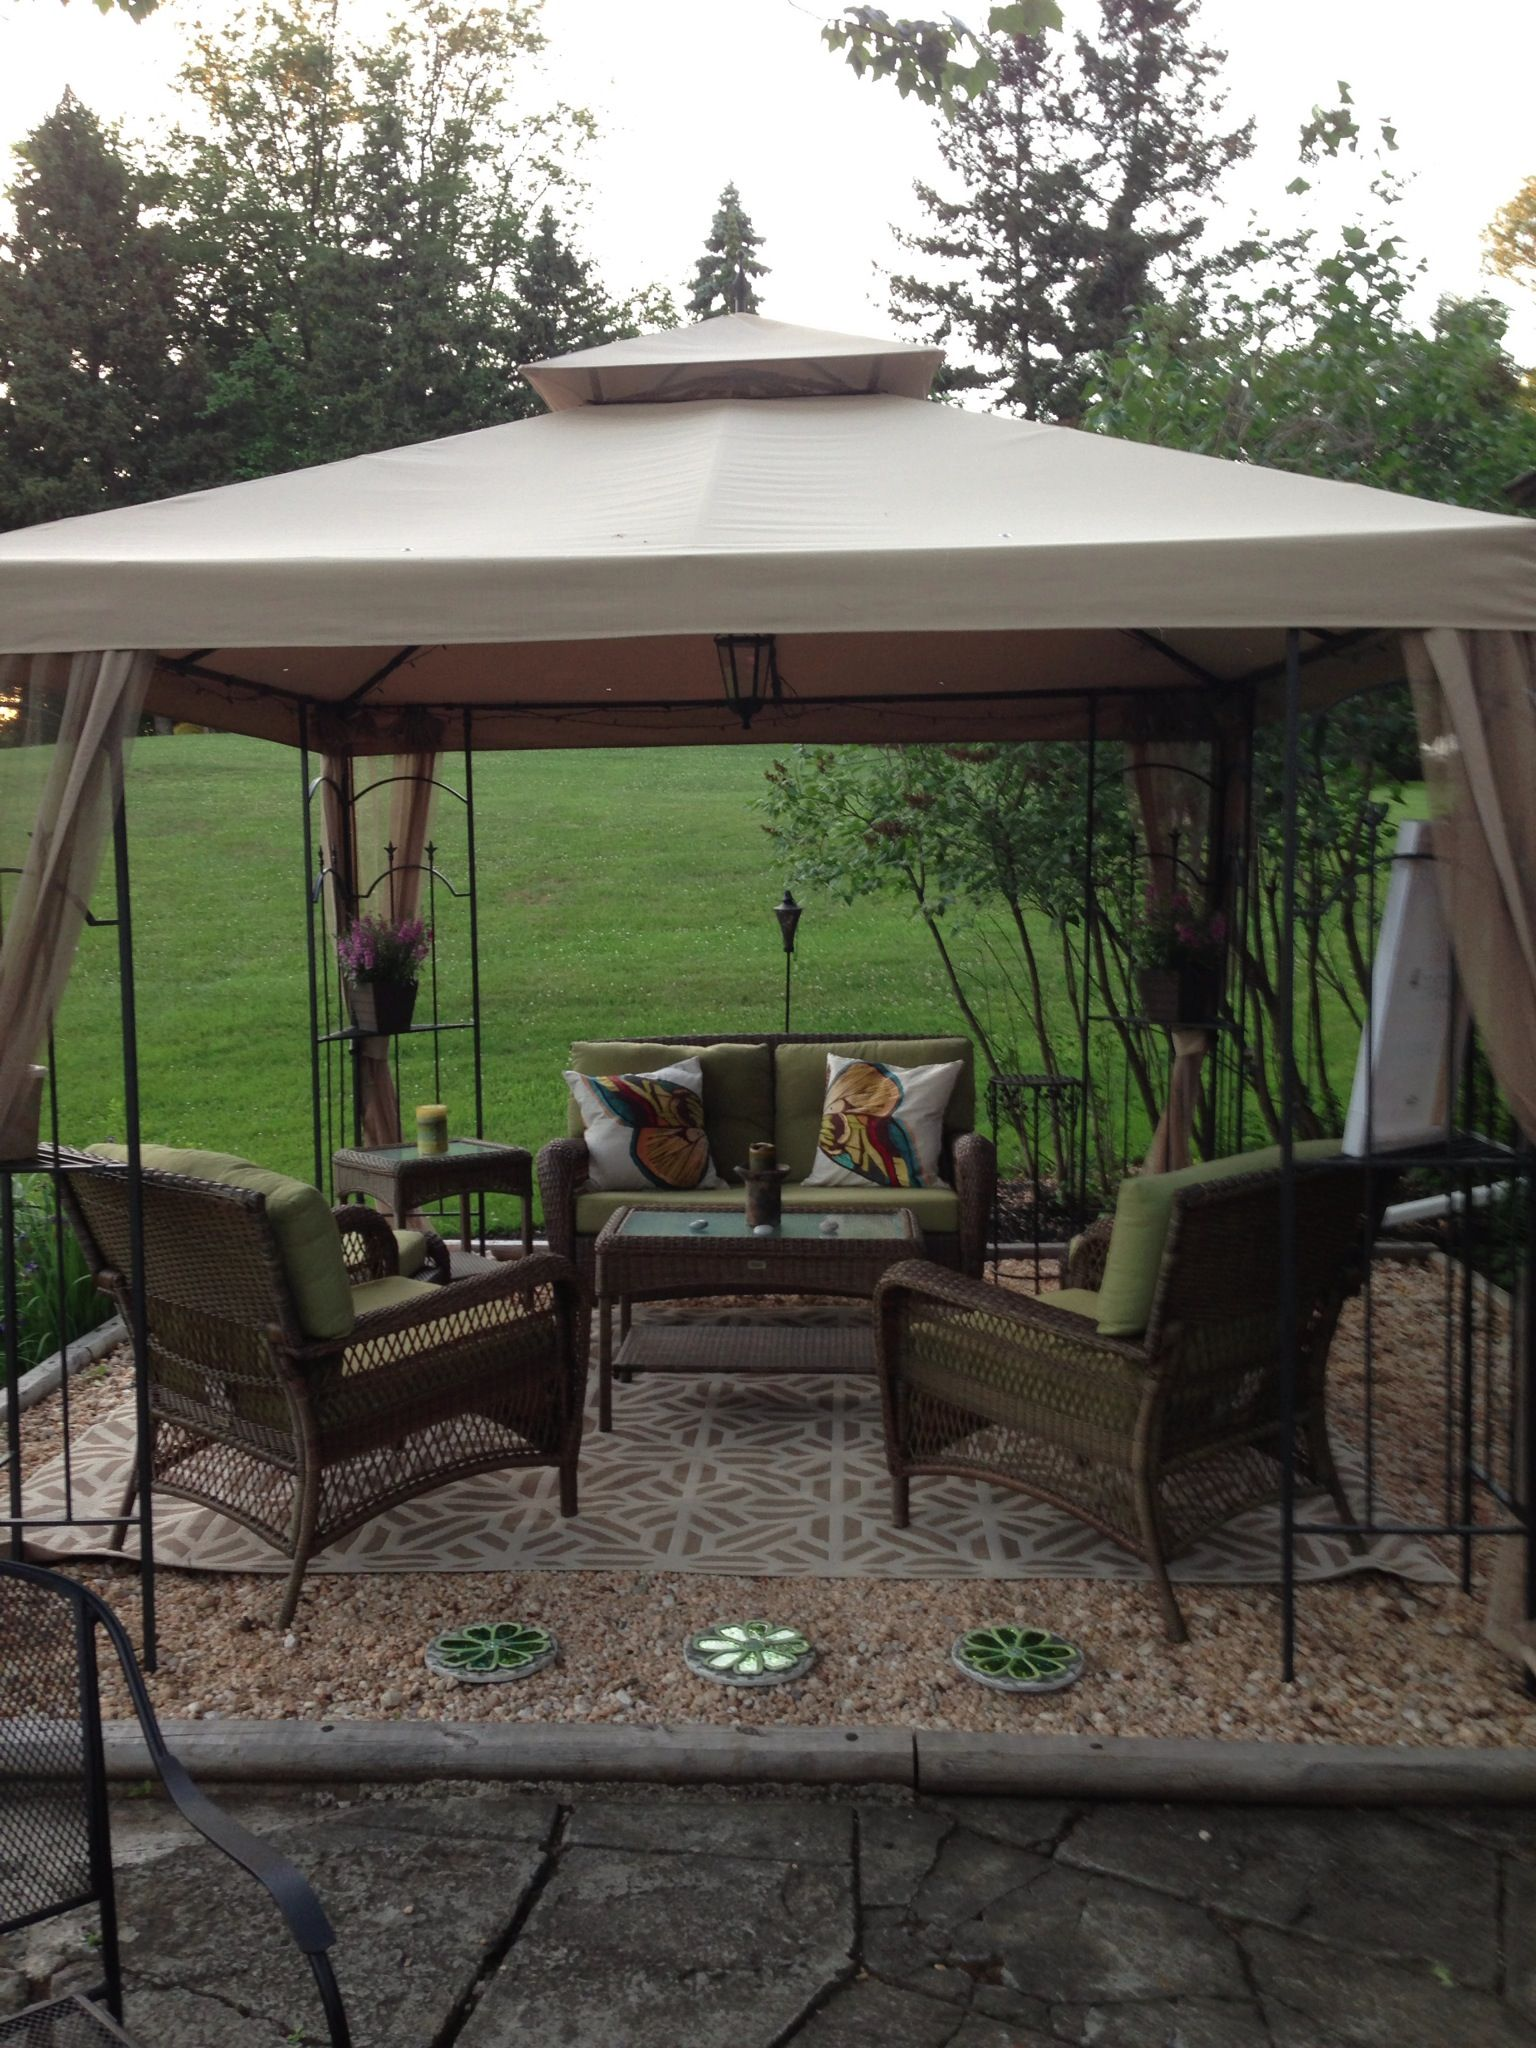 Temporary Flooring Temporary Flooring Ideas For Portable Gazebos Now Is The